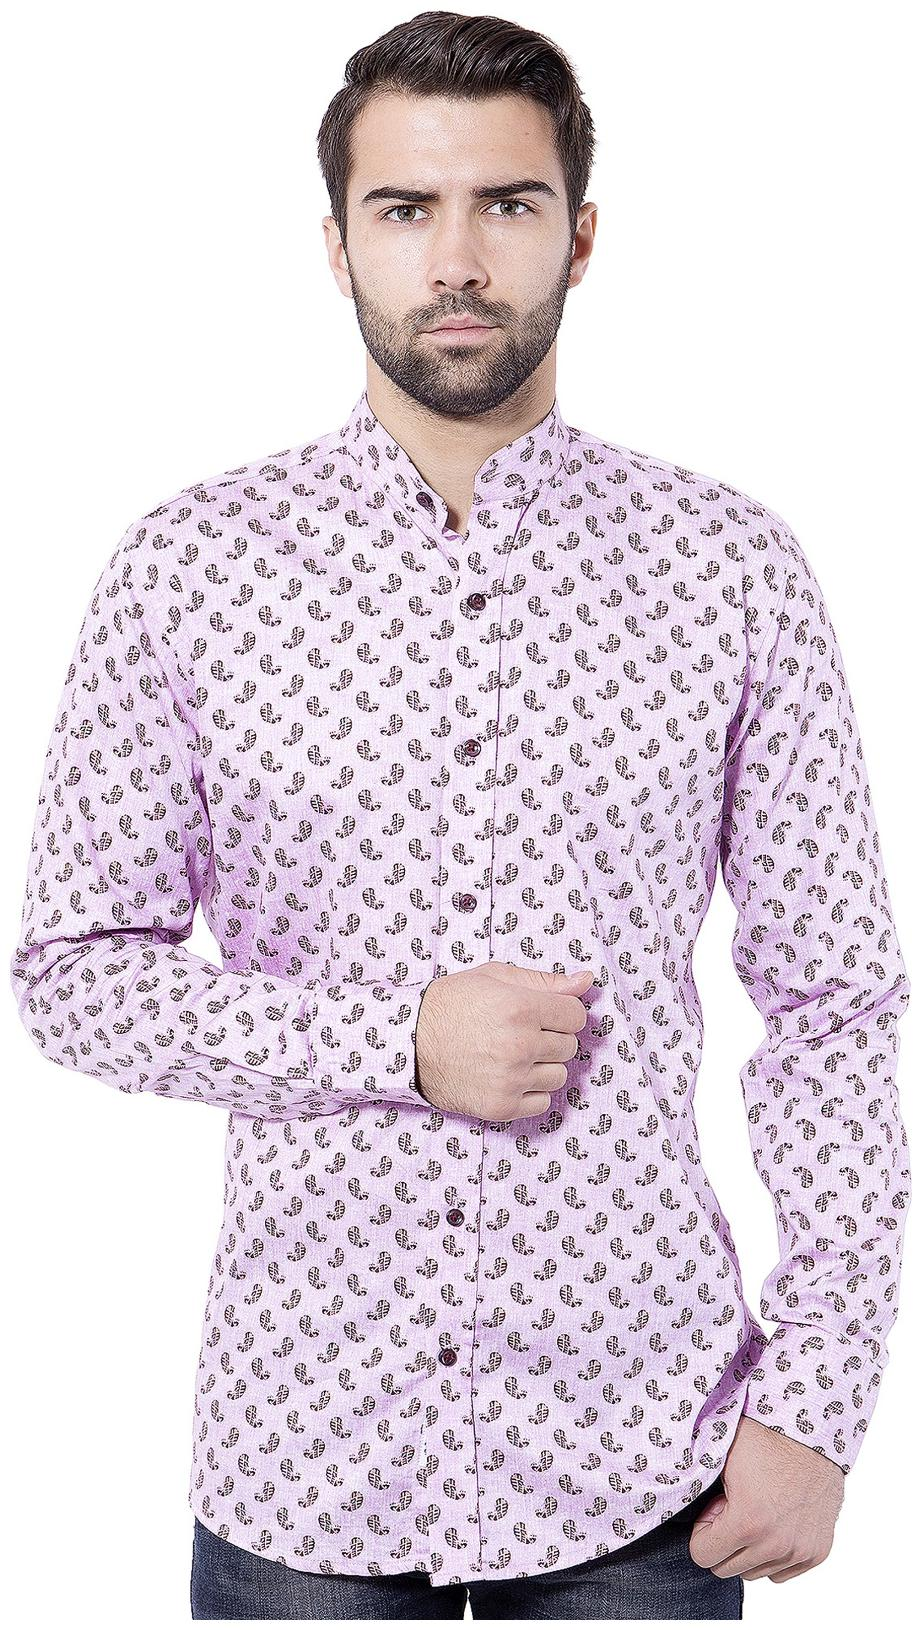 https://assetscdn1.paytm.com/images/catalog/product/A/AP/APPTAG-TREND-ORTRAD45459EE643937/1562810011757_1..jpg